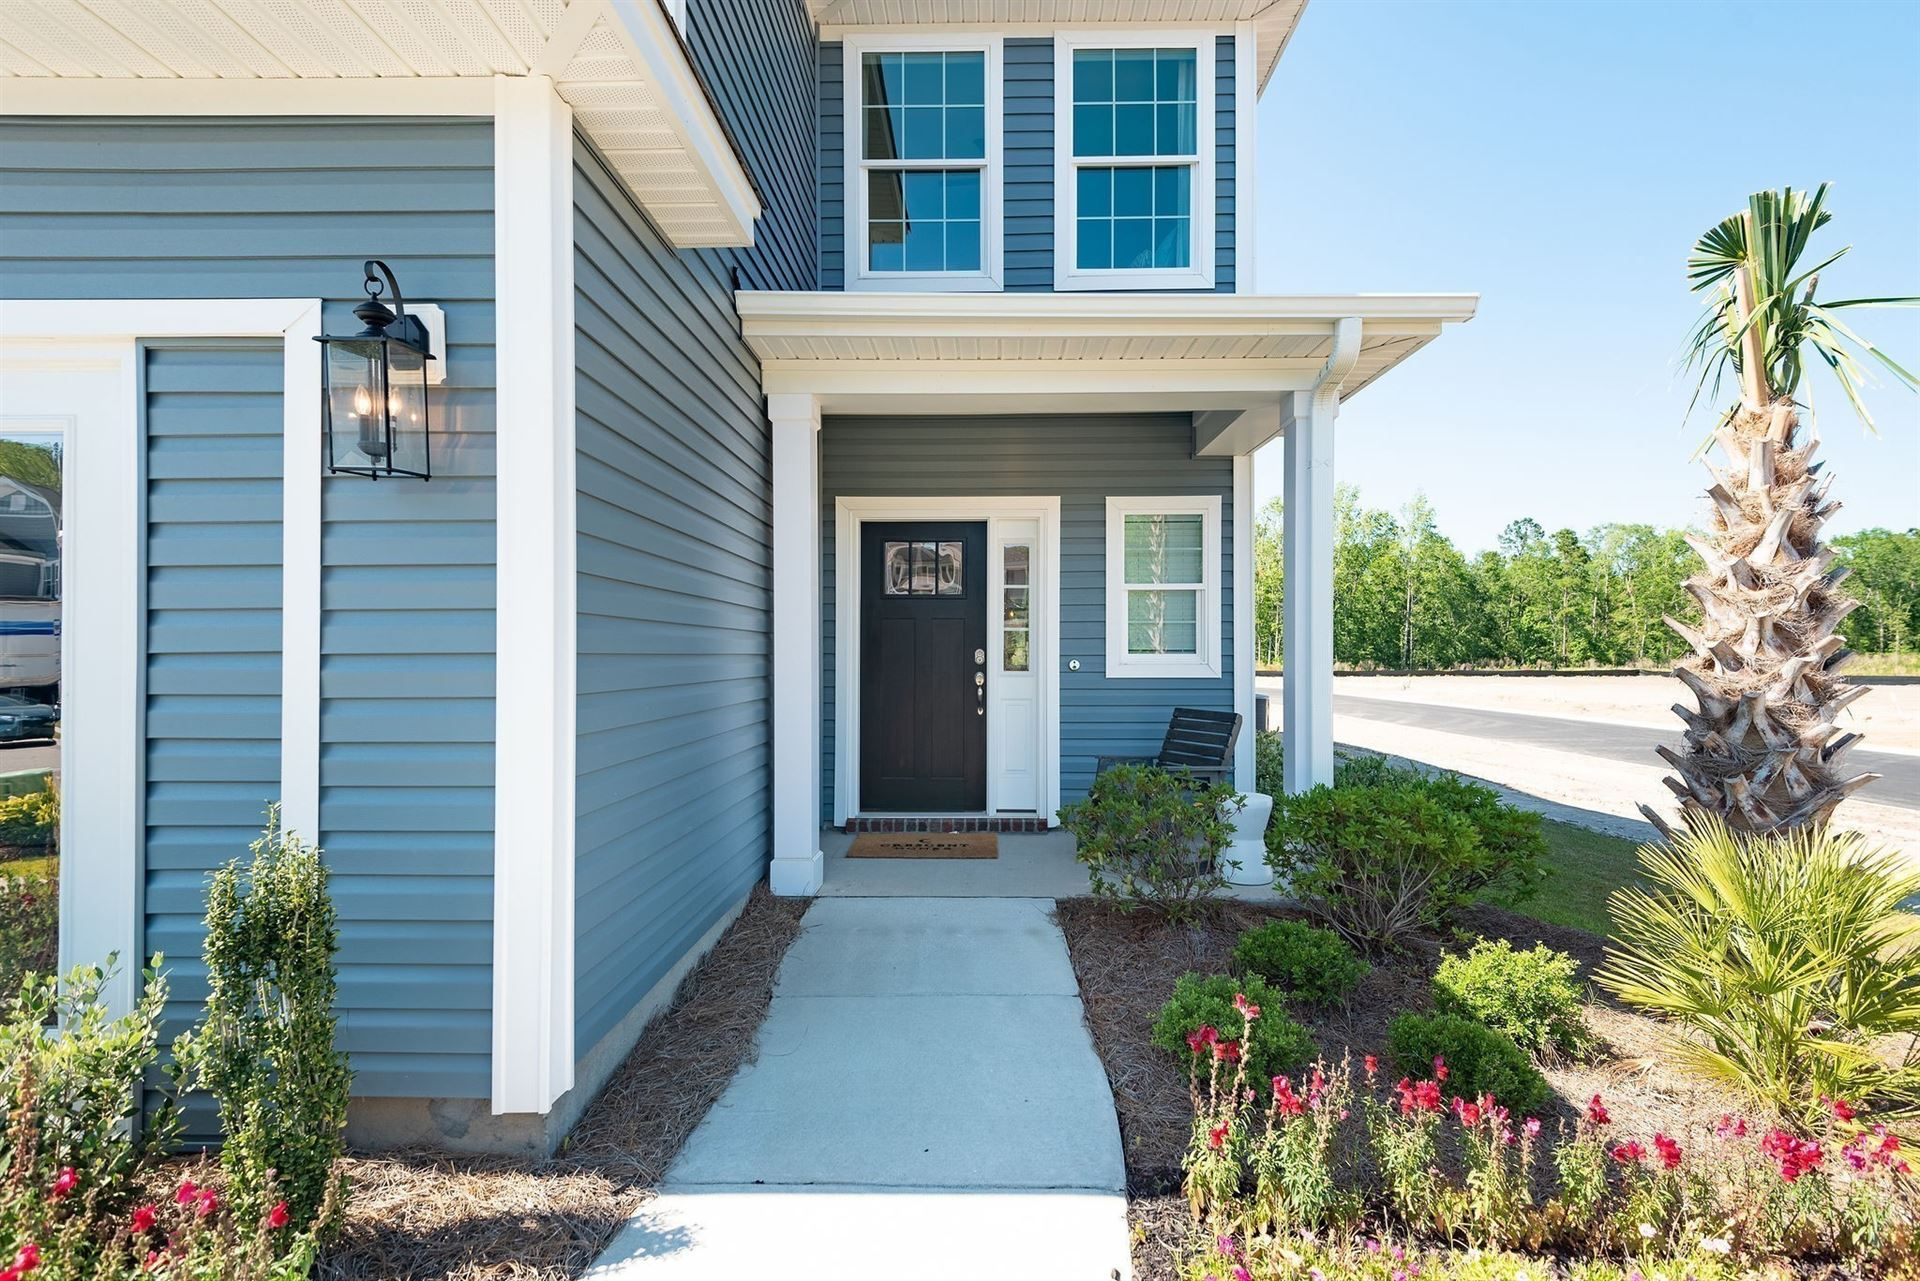 Photo of 3508 Percilla Dr, Murfreesboro, TN 37129 (MLS # 2222943)